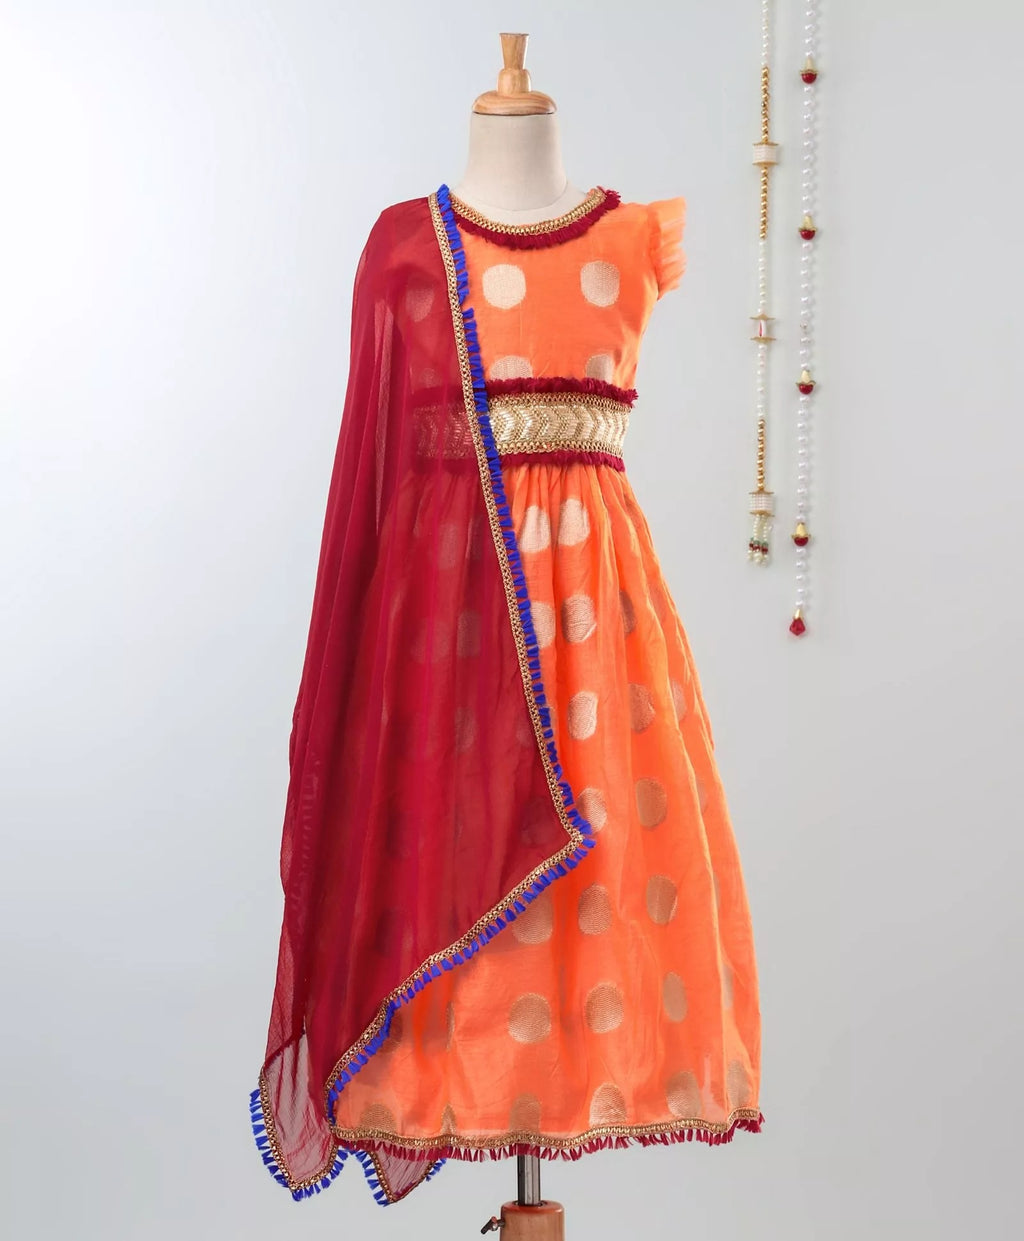 Chanderi Brocade Lehenga Choli For Girls-Orange - BownBee - Creating Special Moments